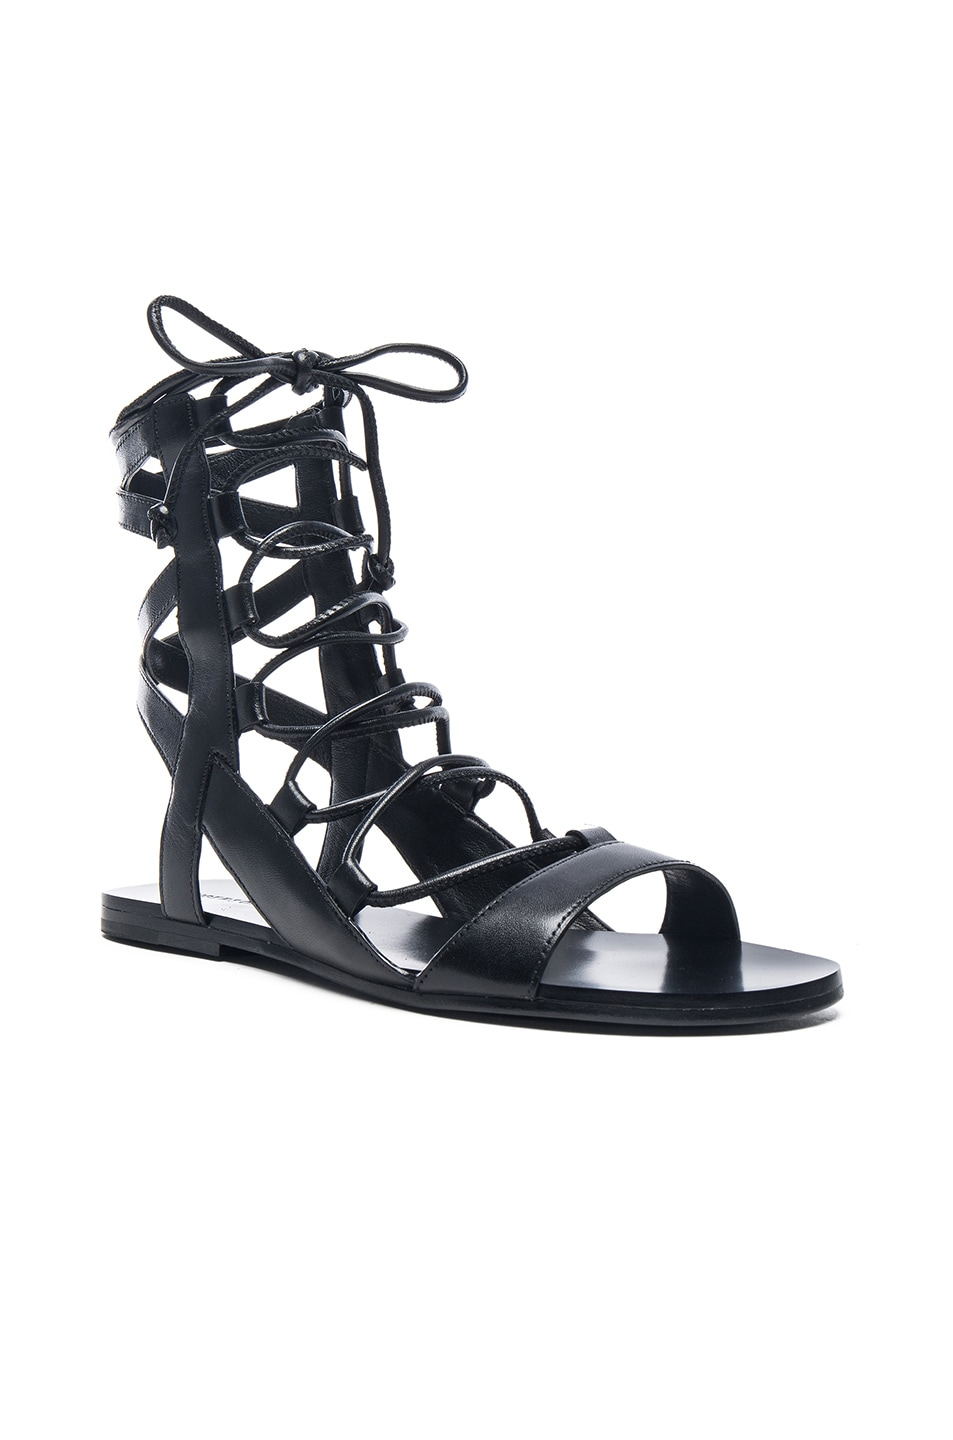 Image 2 of Sigerson Morrison Leather Bunny Sandals in Black